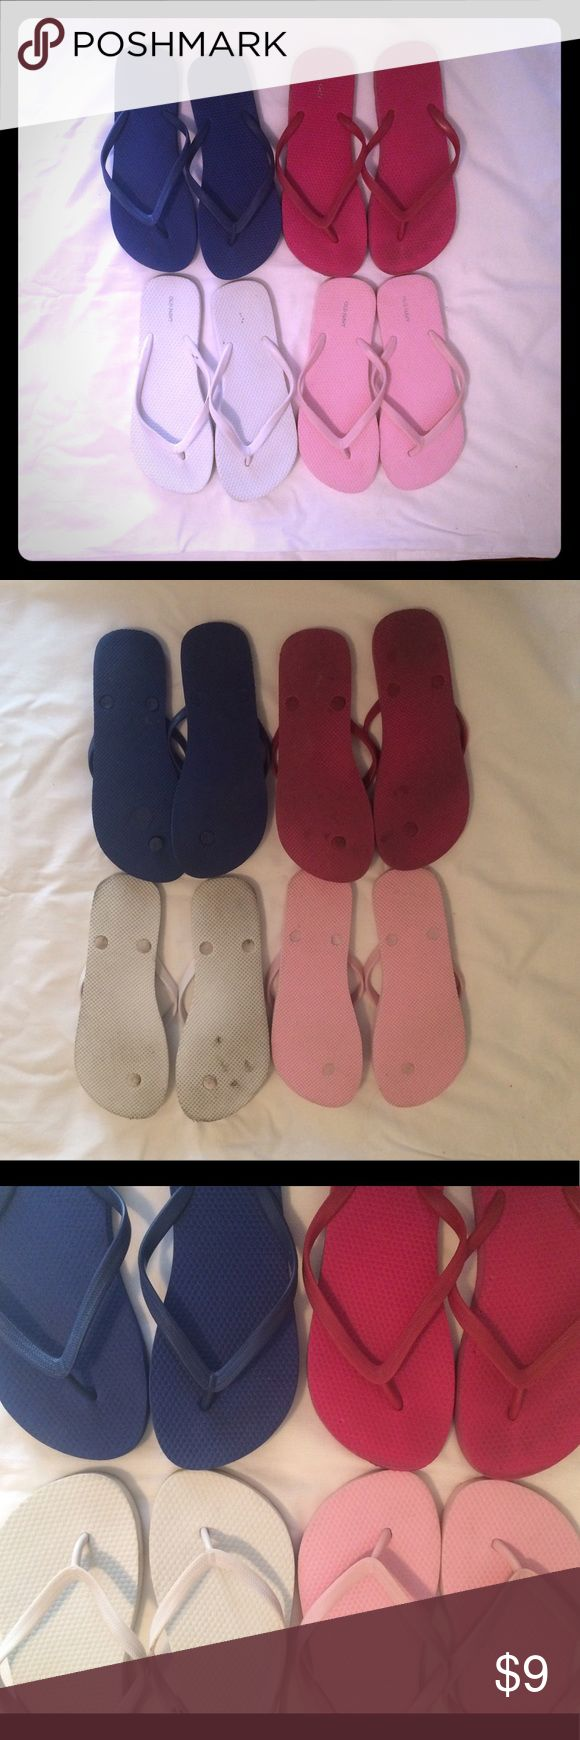 Women's Old Navy flip flops bundle Women's Old Navy flip flops bundle size 9. Colors are cobalt blue, light pink, hot pink and white. Light pink ones are barely worn. White ones have some black marks on them and hot pink ones have some tiny bite marks from my cat, but not noticeable when on. Old Navy Shoes Sandals